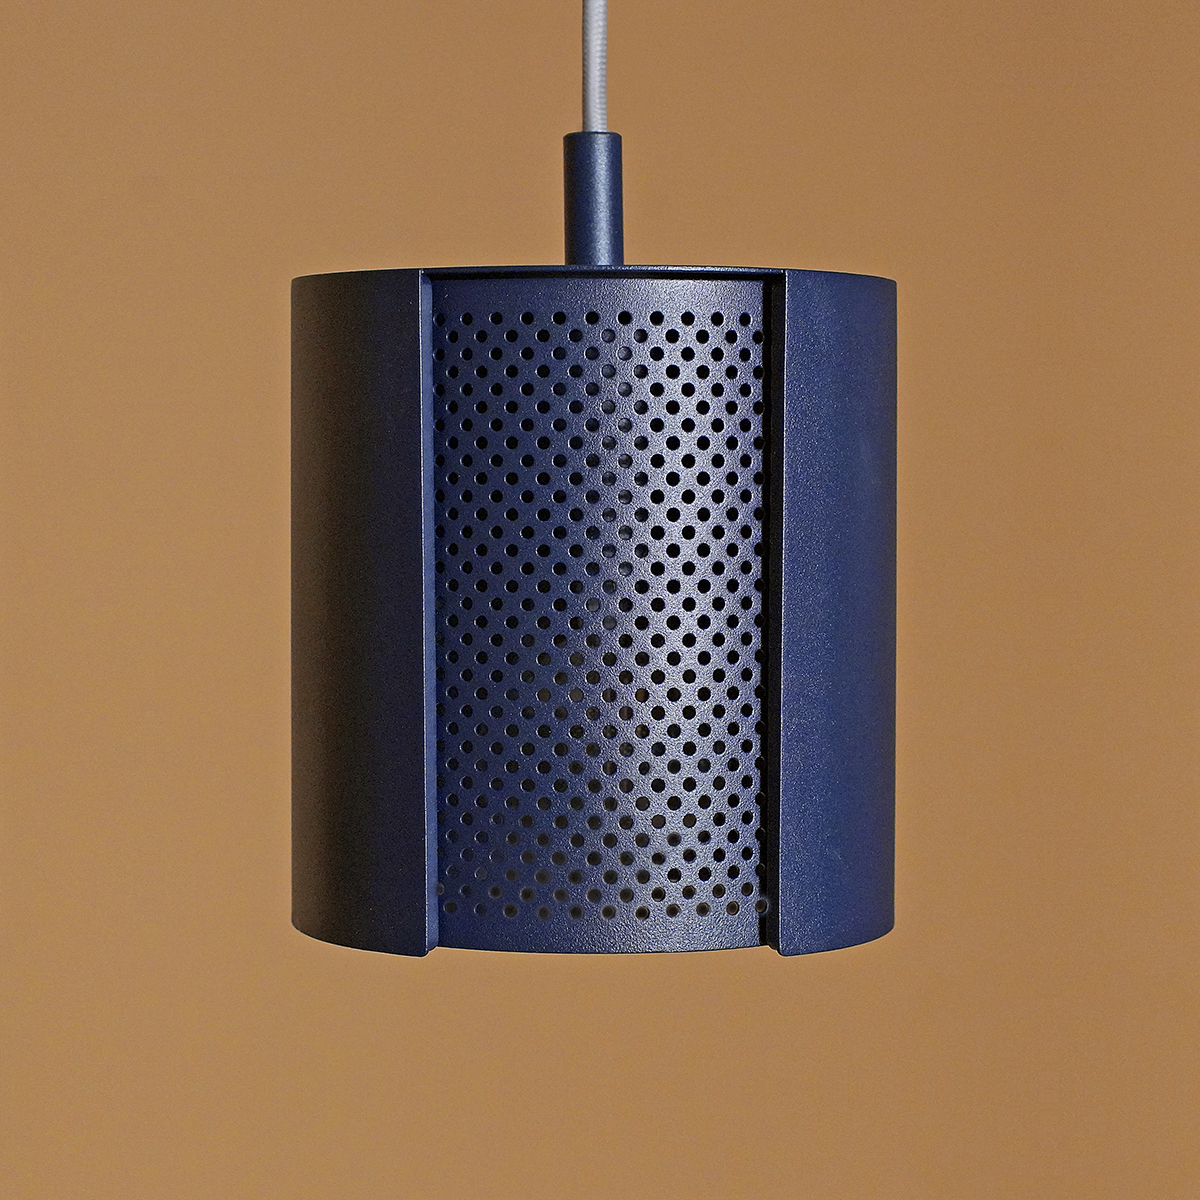 Ogen lamp for borcas by Agata Nowak - Creative Work